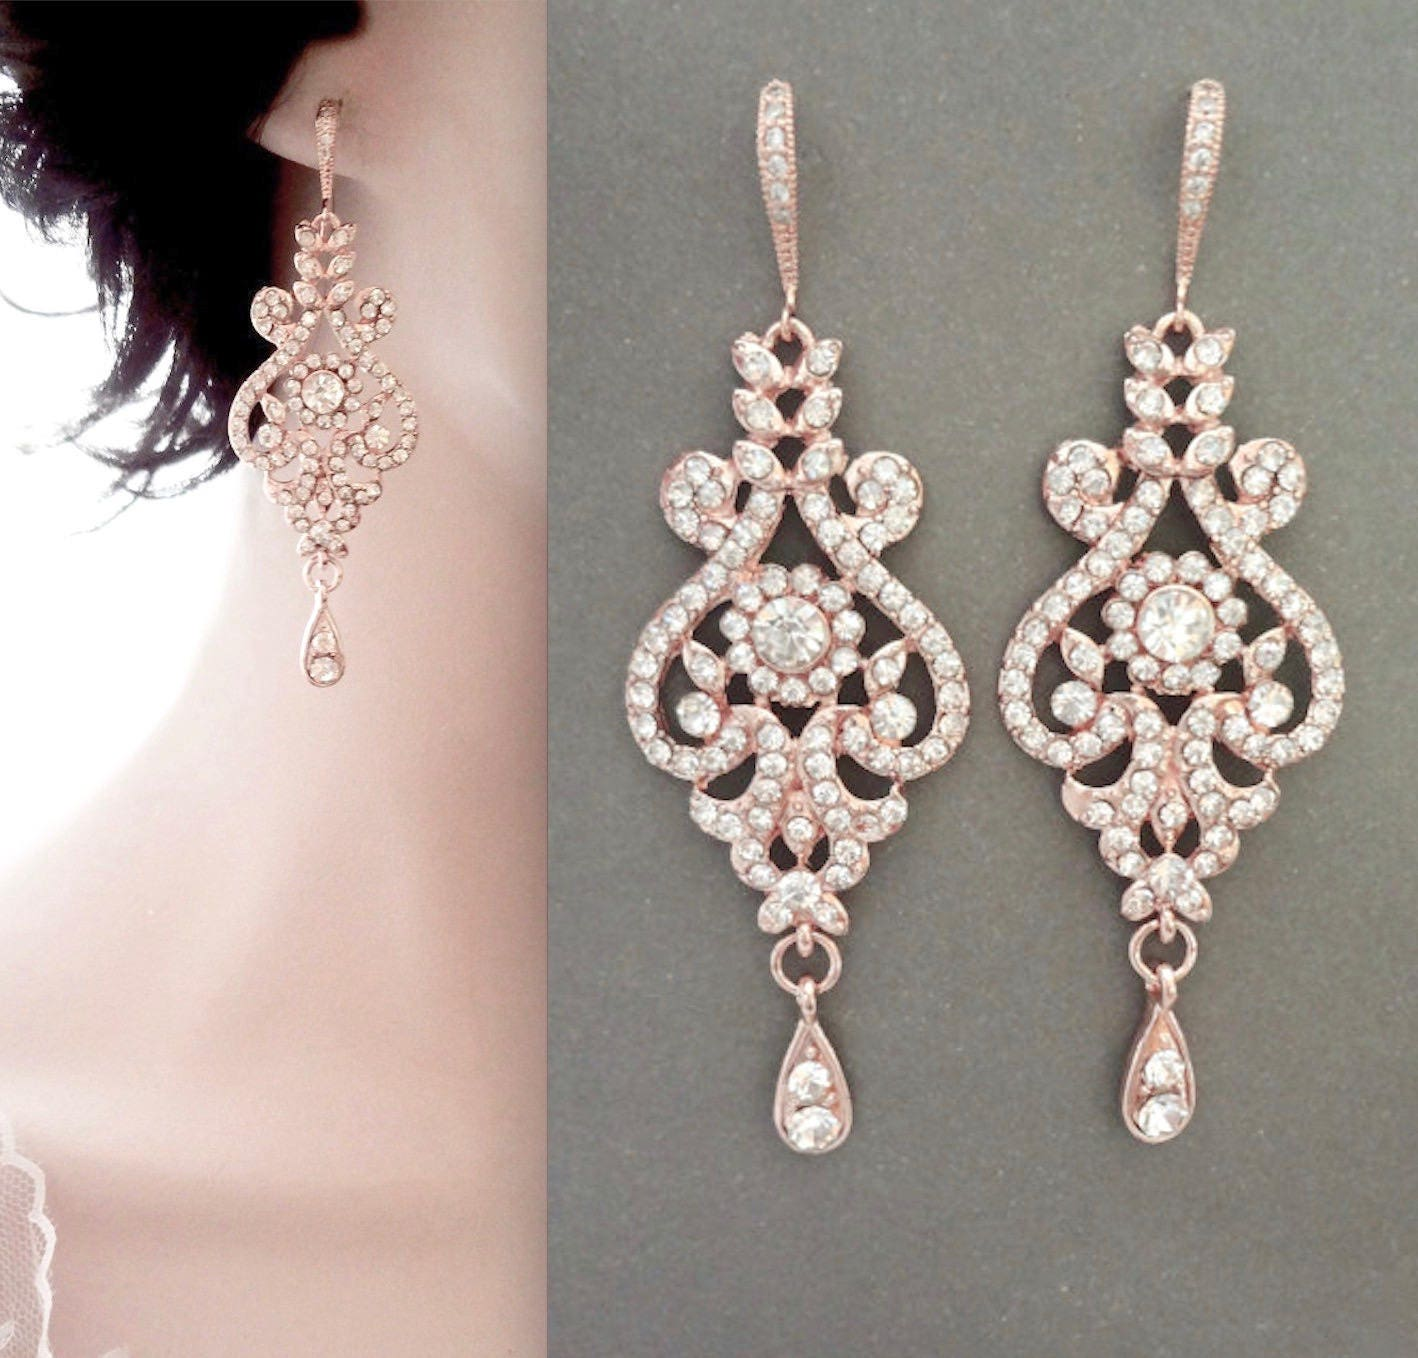 Chandelier Earrings Earrings Jewelry